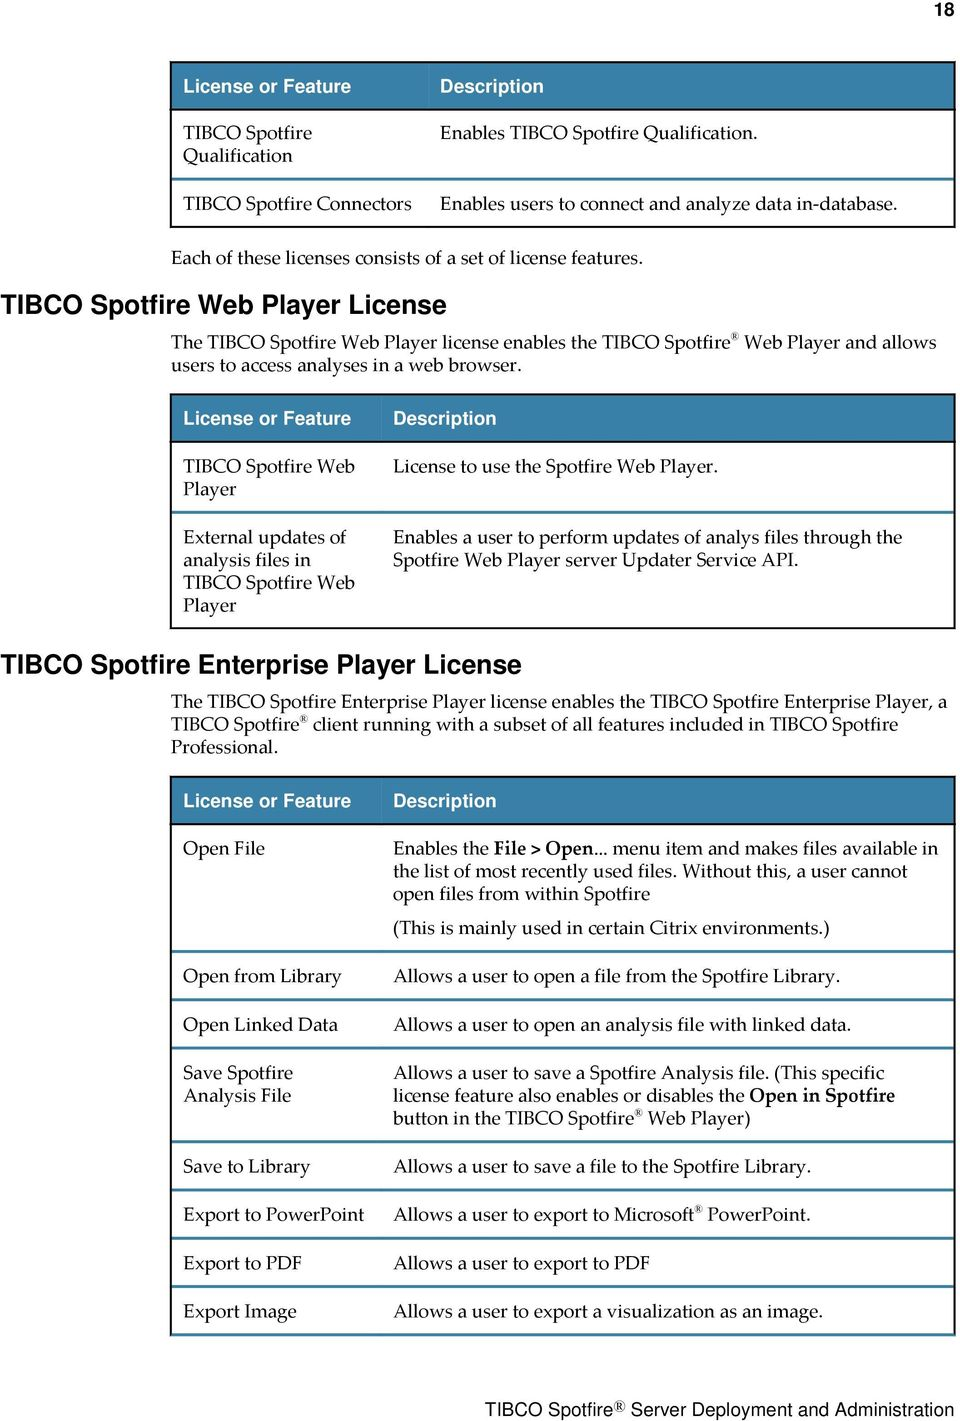 TIBCO Spotfire Web Player License The TIBCO Spotfire Web Player license enables the TIBCO Spotfire Web Player and allows users to access analyses in a web browser.